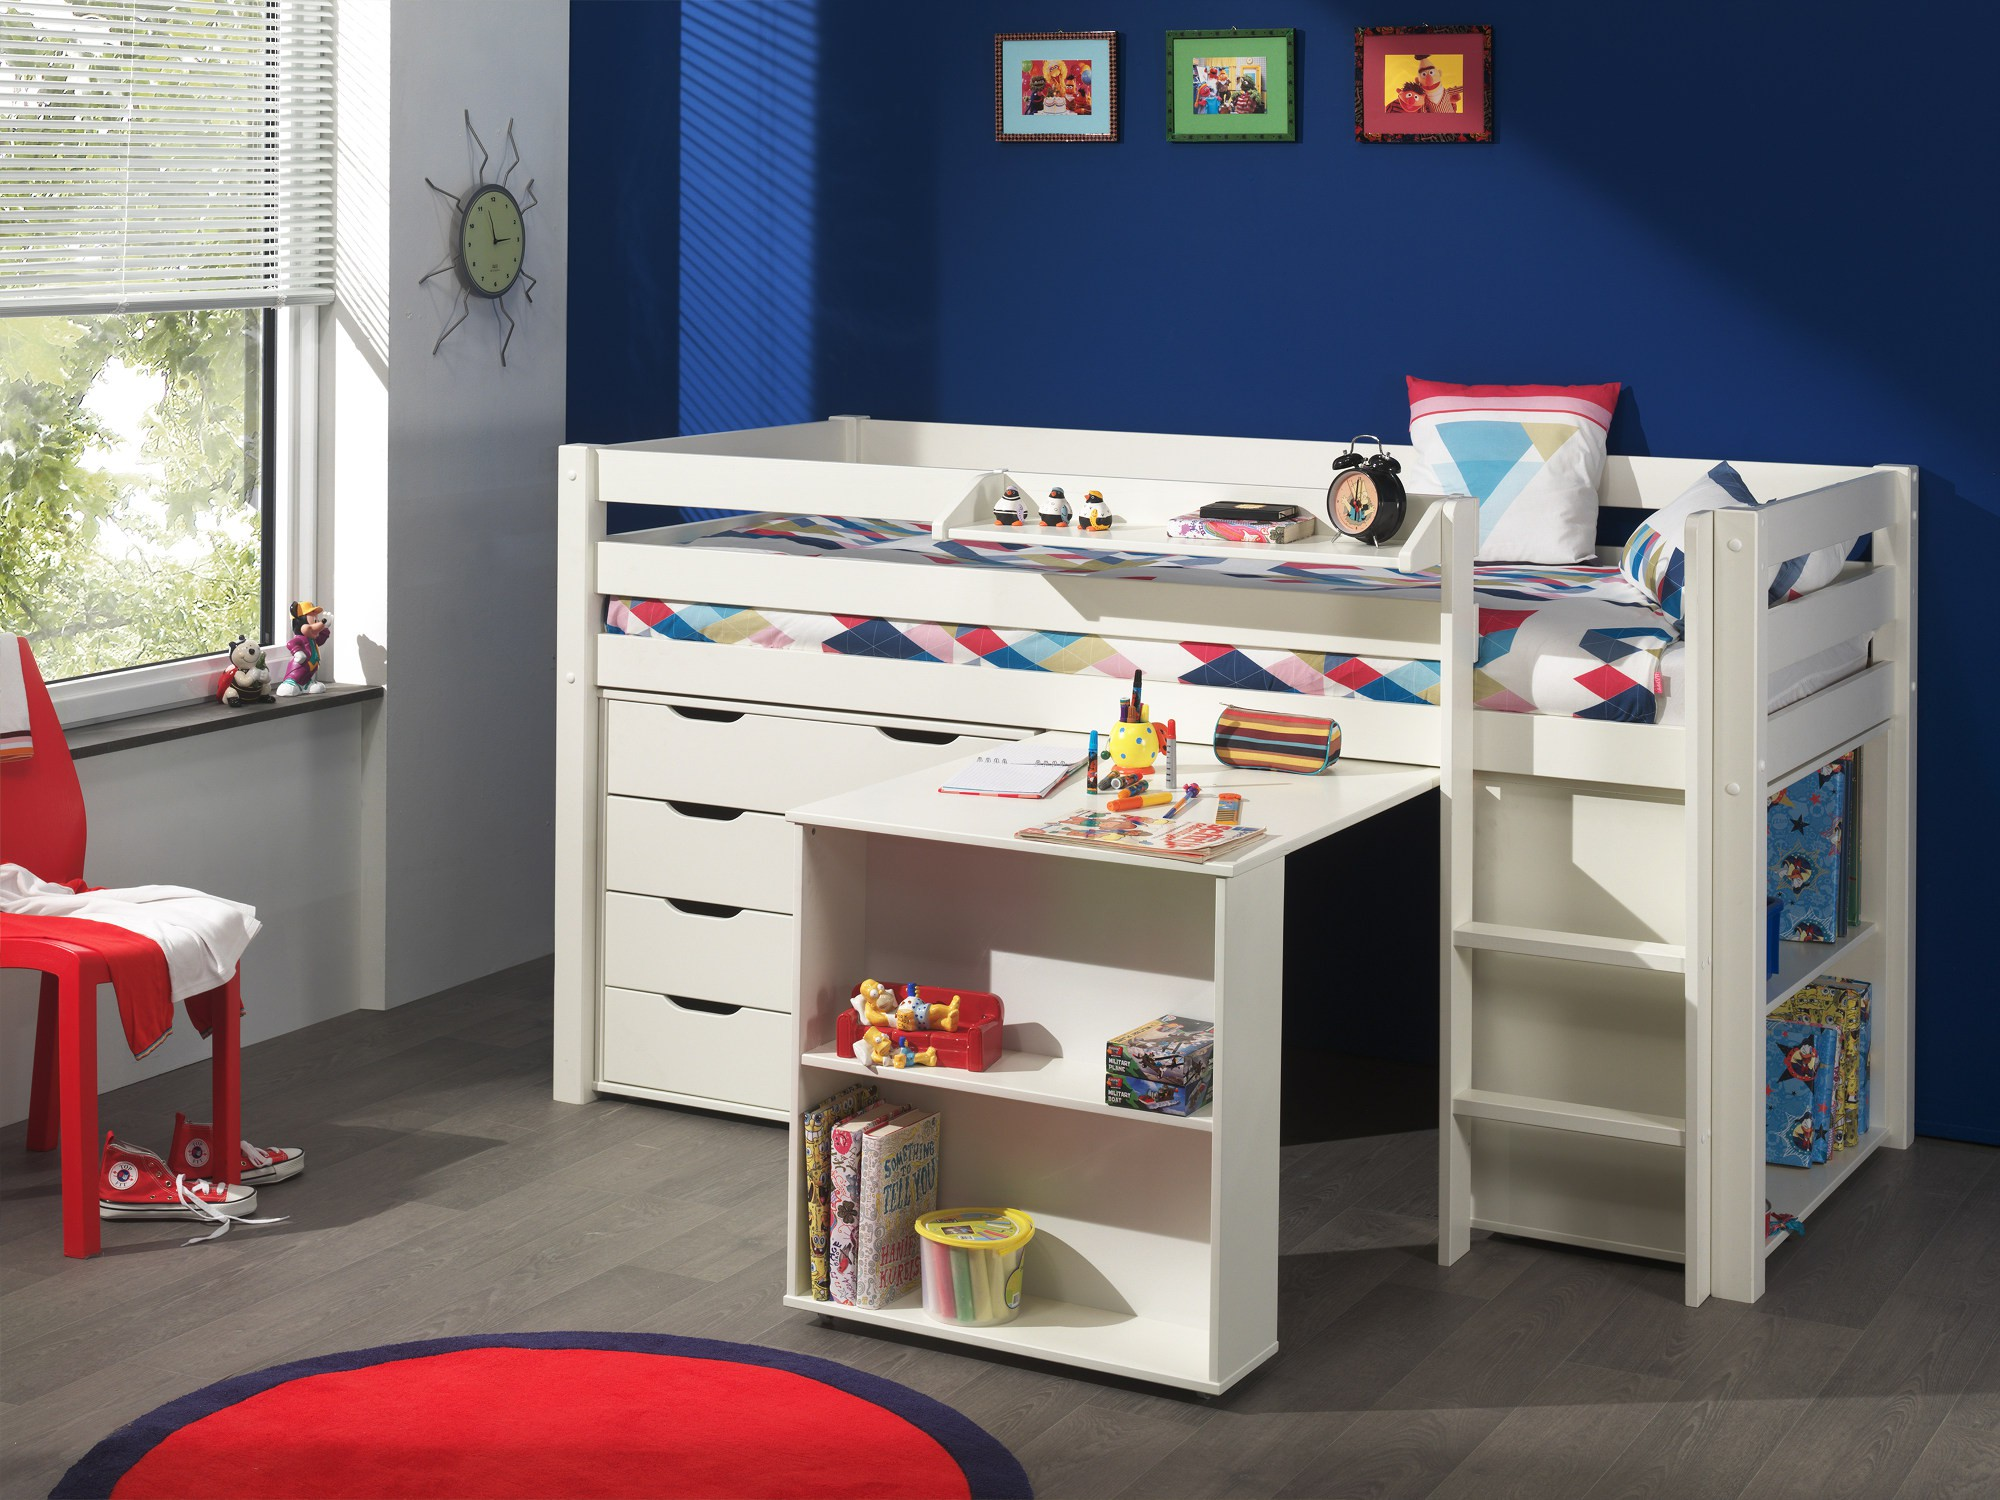 funktions hochbett pino mit kommode 4 schubladen kiefer wei teilmassiv kinder. Black Bedroom Furniture Sets. Home Design Ideas